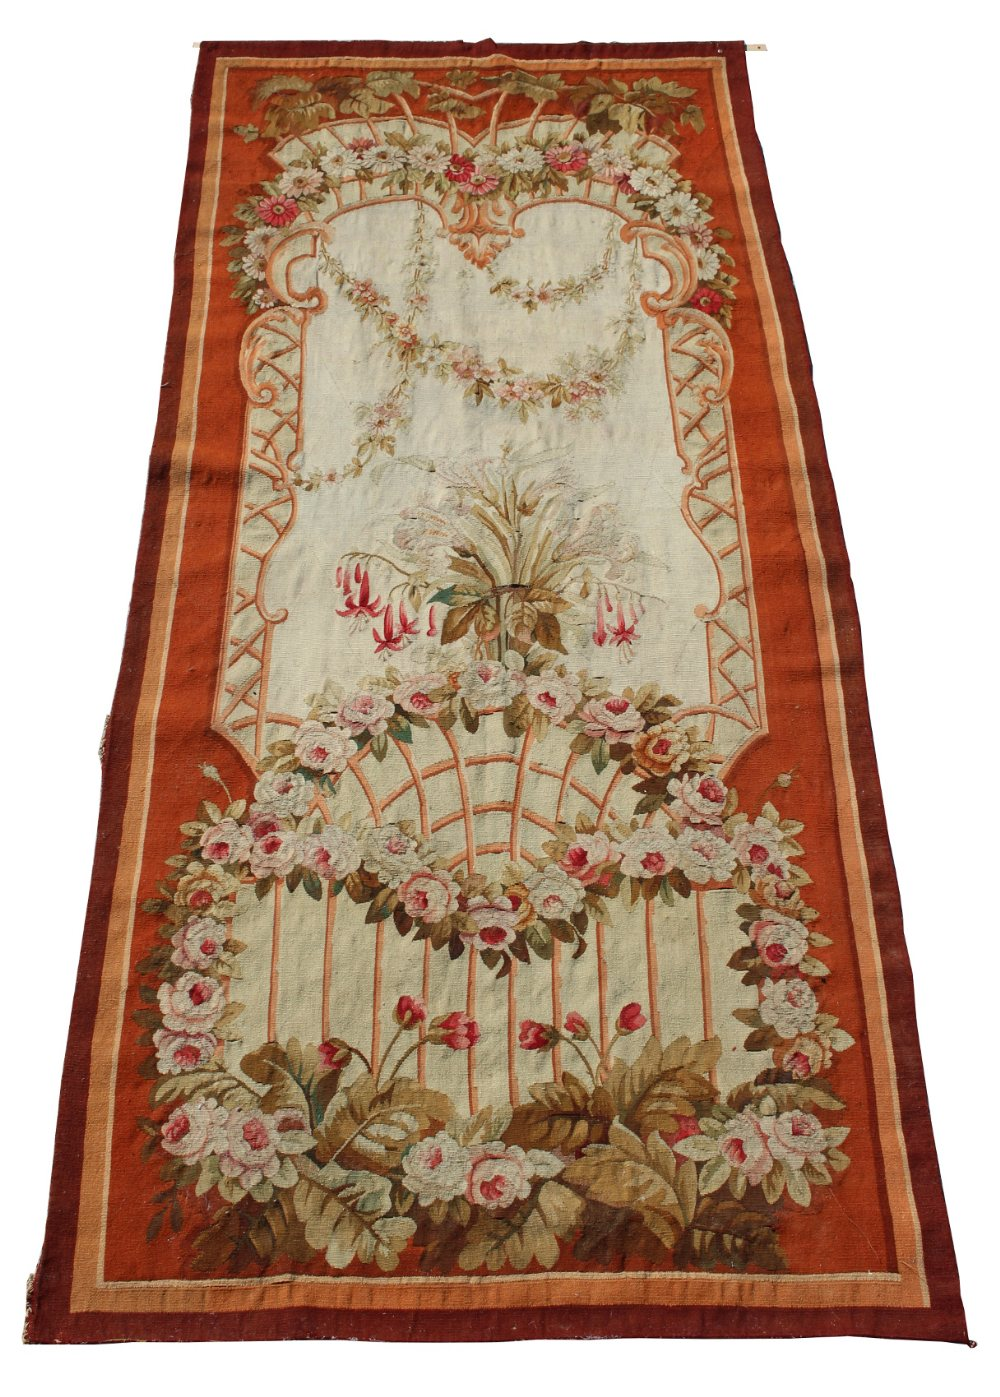 Property of a gentleman - a late 19th century needlepoint wall hanging, in the manner of Aubusson,